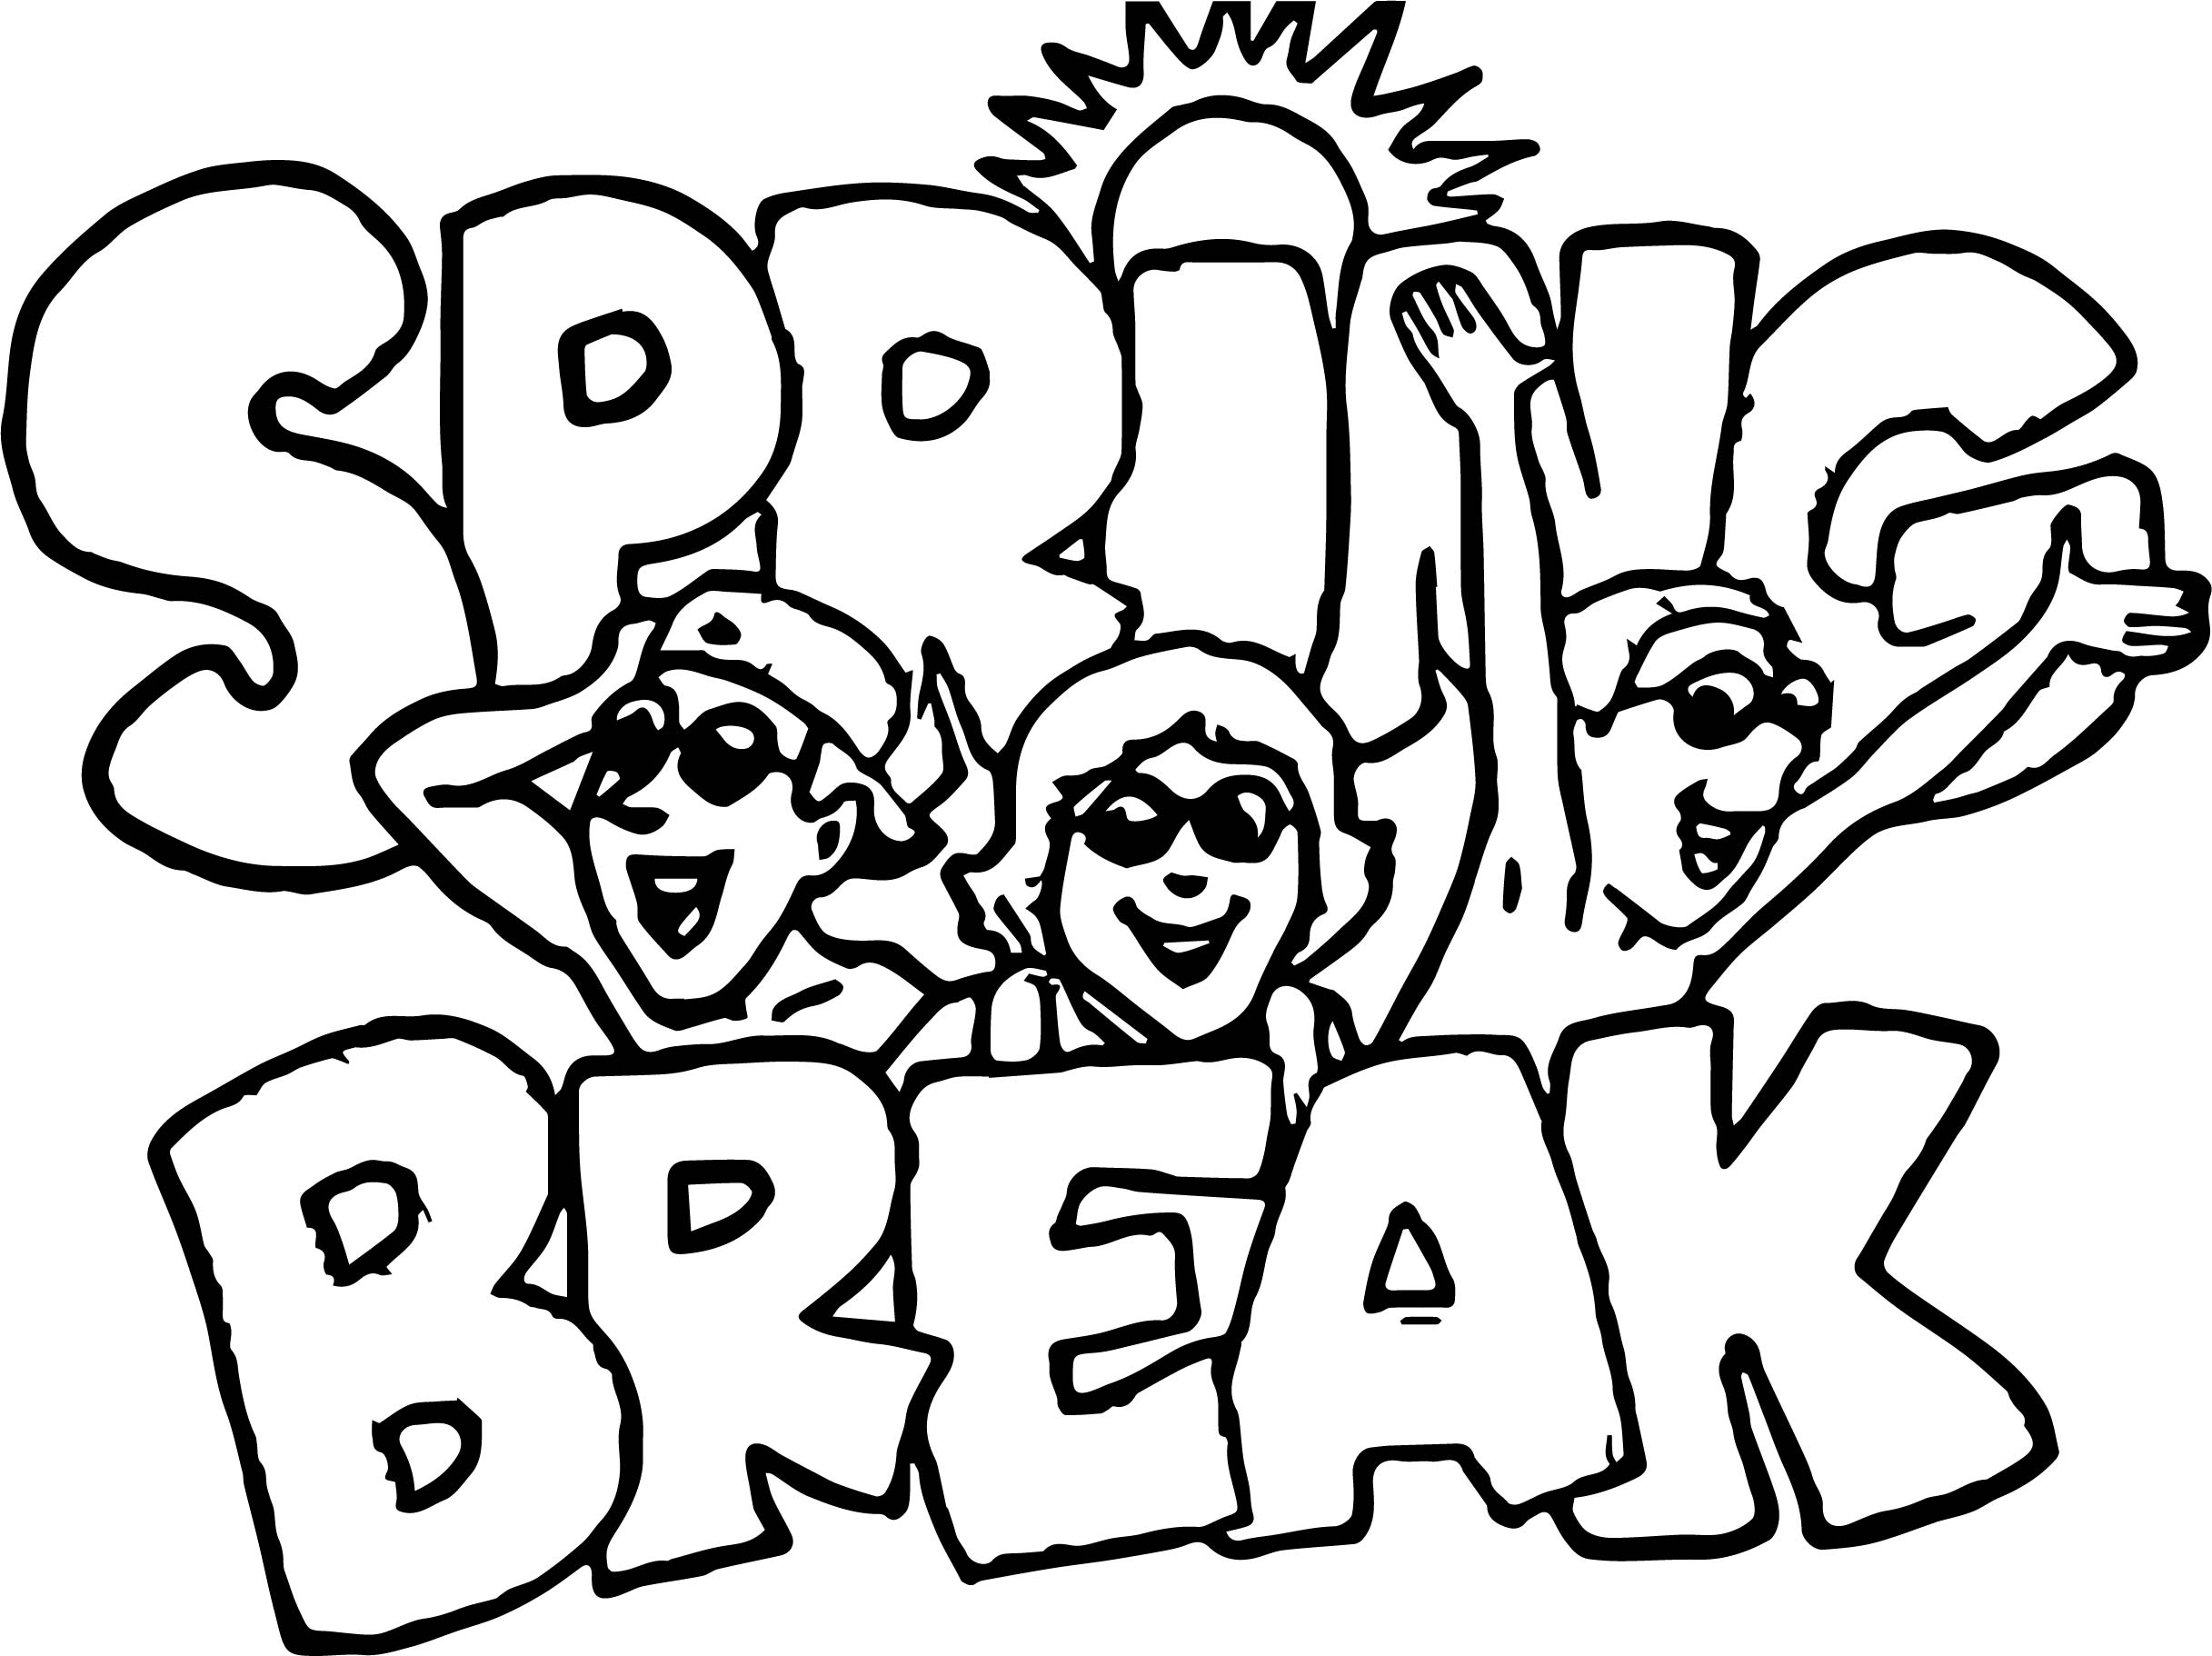 spring break coloring pages Kaysmakehaukco